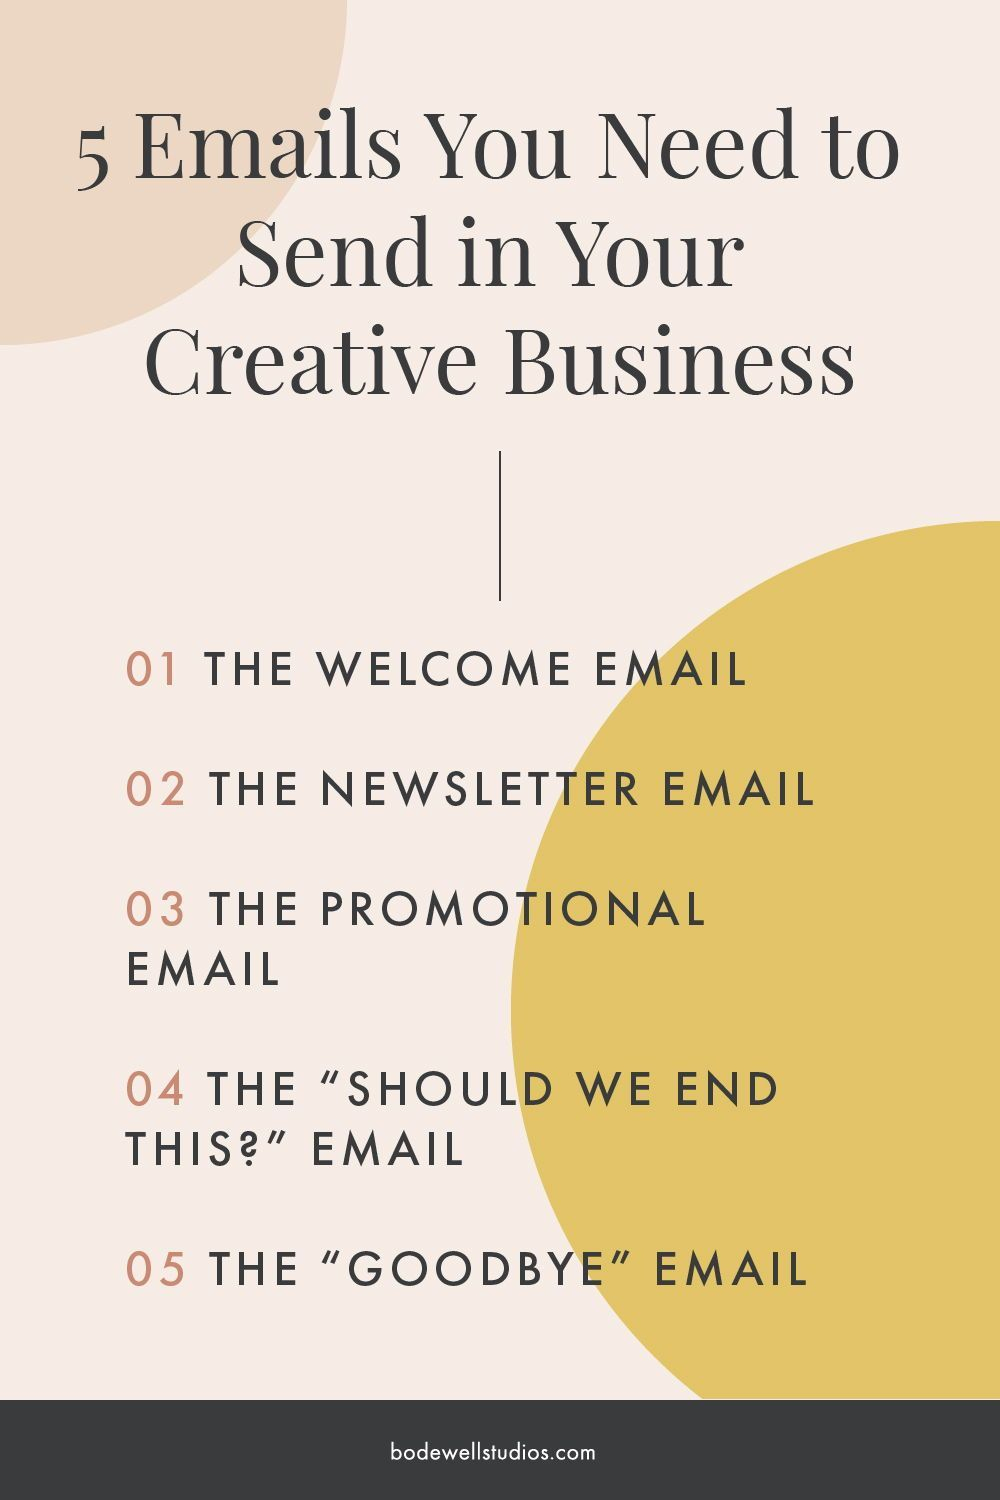 You know that an email marketing strategy is a must-have for your small business to thrive. But could your email communications use a little TLC? Save and click this post to find out. Plus learn the 5 emails every creative entrepreneur needs to be sending and content ideas for each. #emailmarketing #creativepreneur #onlinemarketing